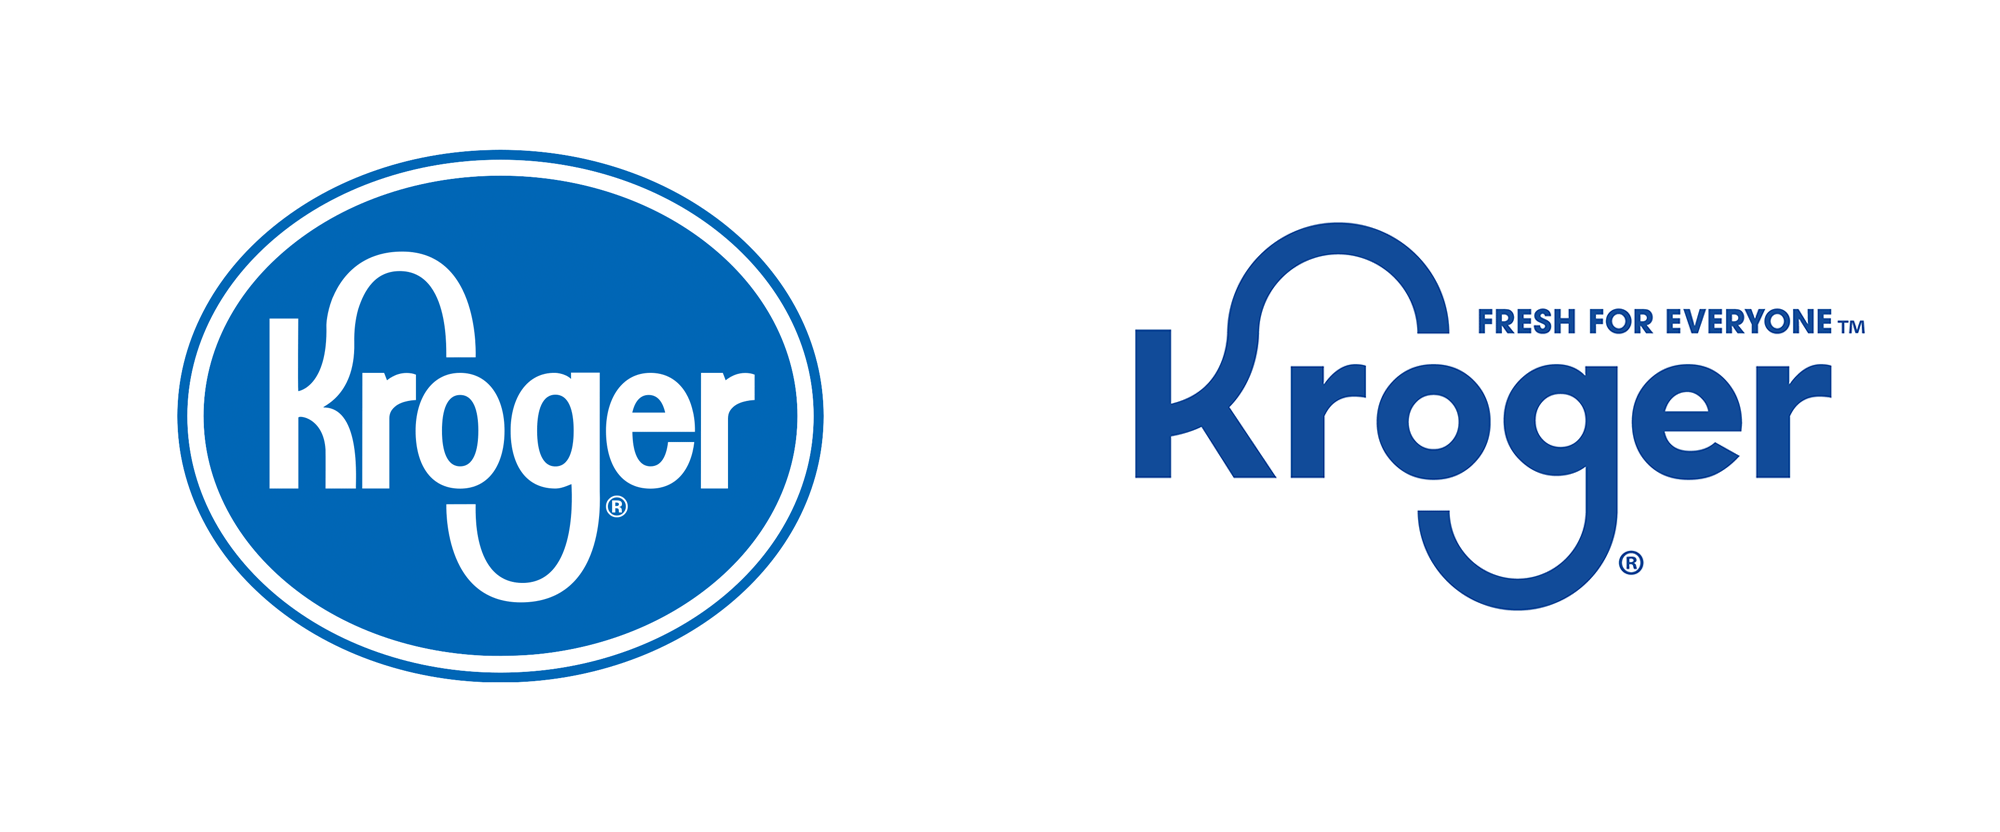 New Logo and Identity for Kroger by DDB